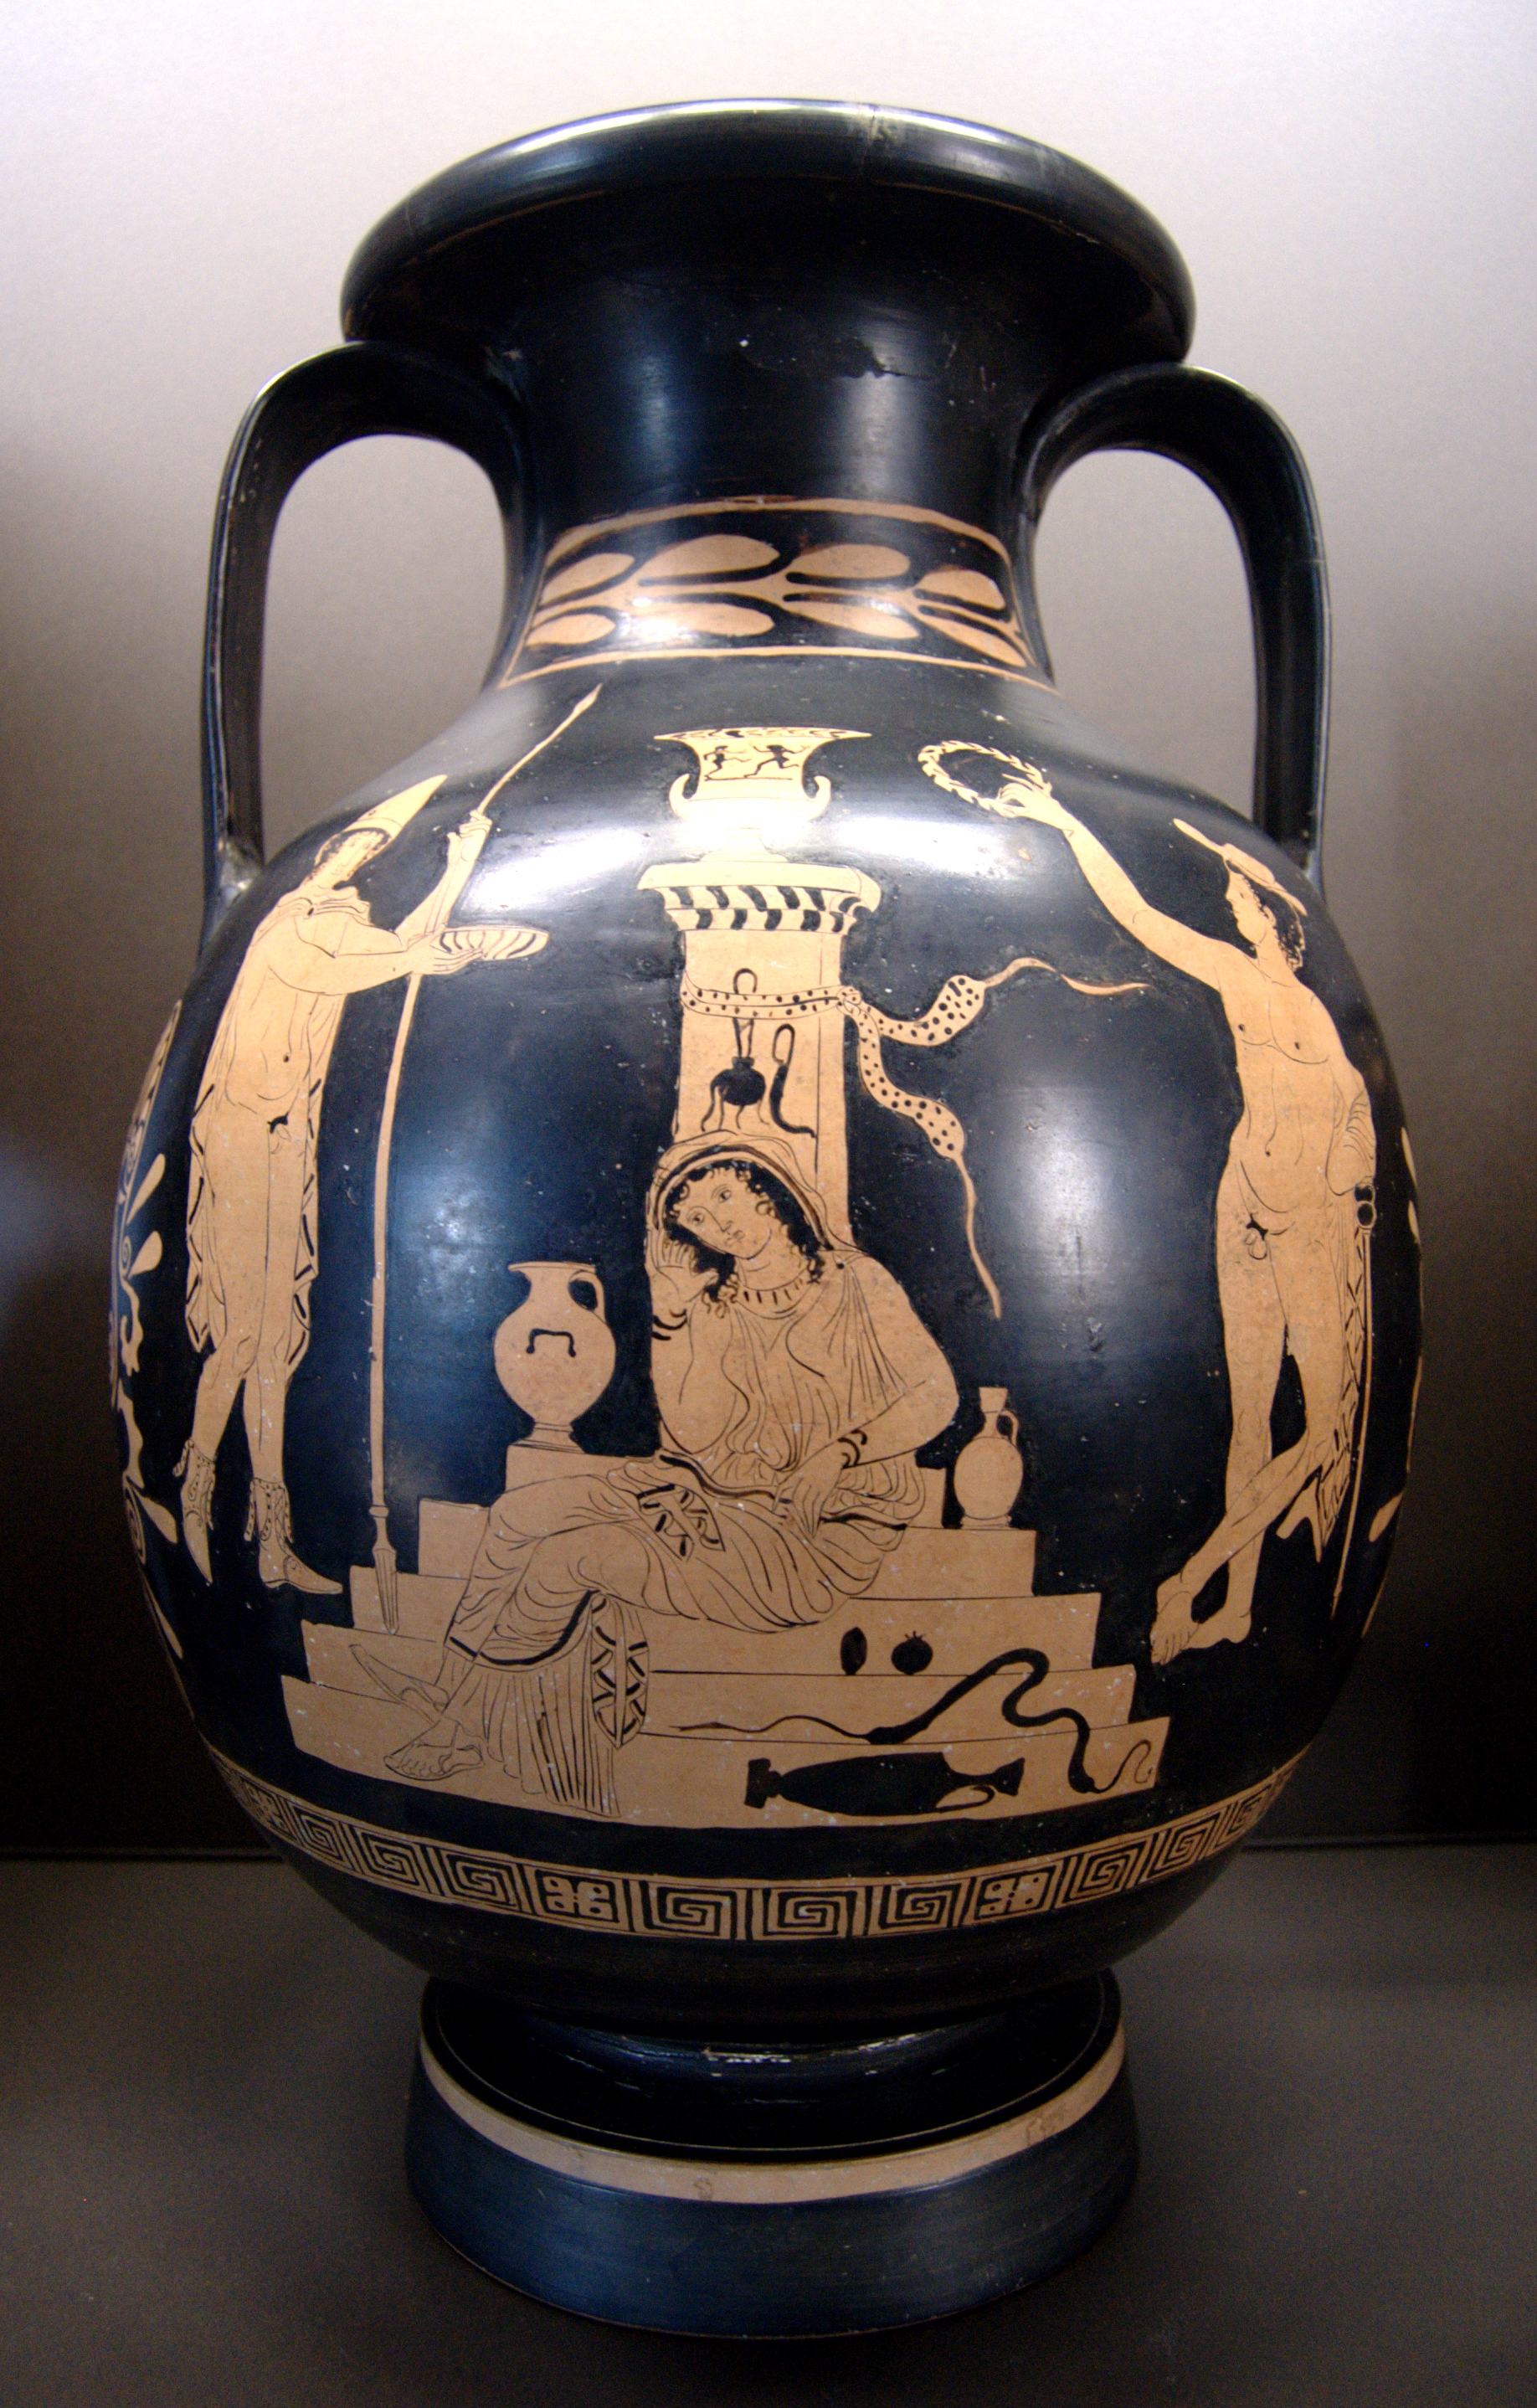 Lucanian vase painting wikipedia orestes elektra and hermes in front of the tomb of agamemnon pelike by the choephorai painter circa 380370 bc paris louvre floridaeventfo Image collections